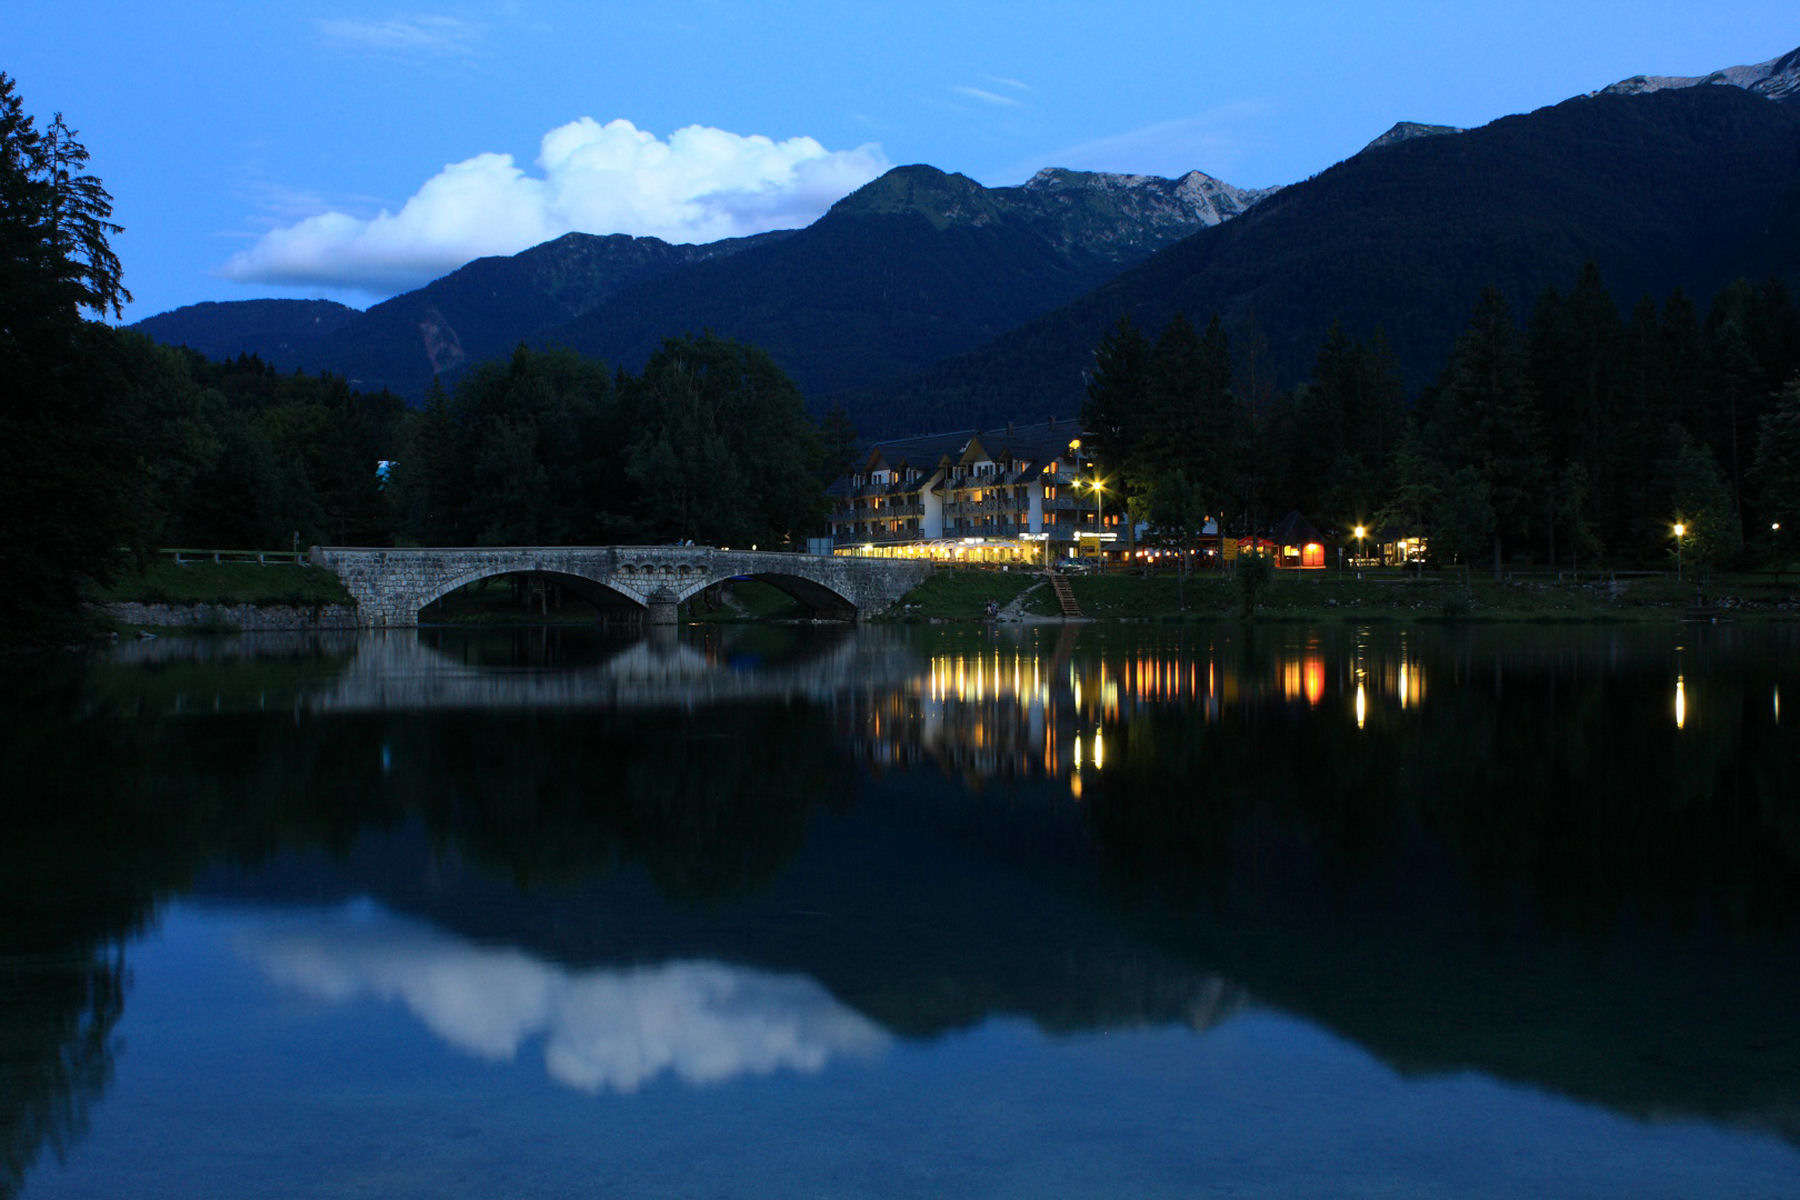 A walk by Lake Bohinj when lit up at night is truly magical